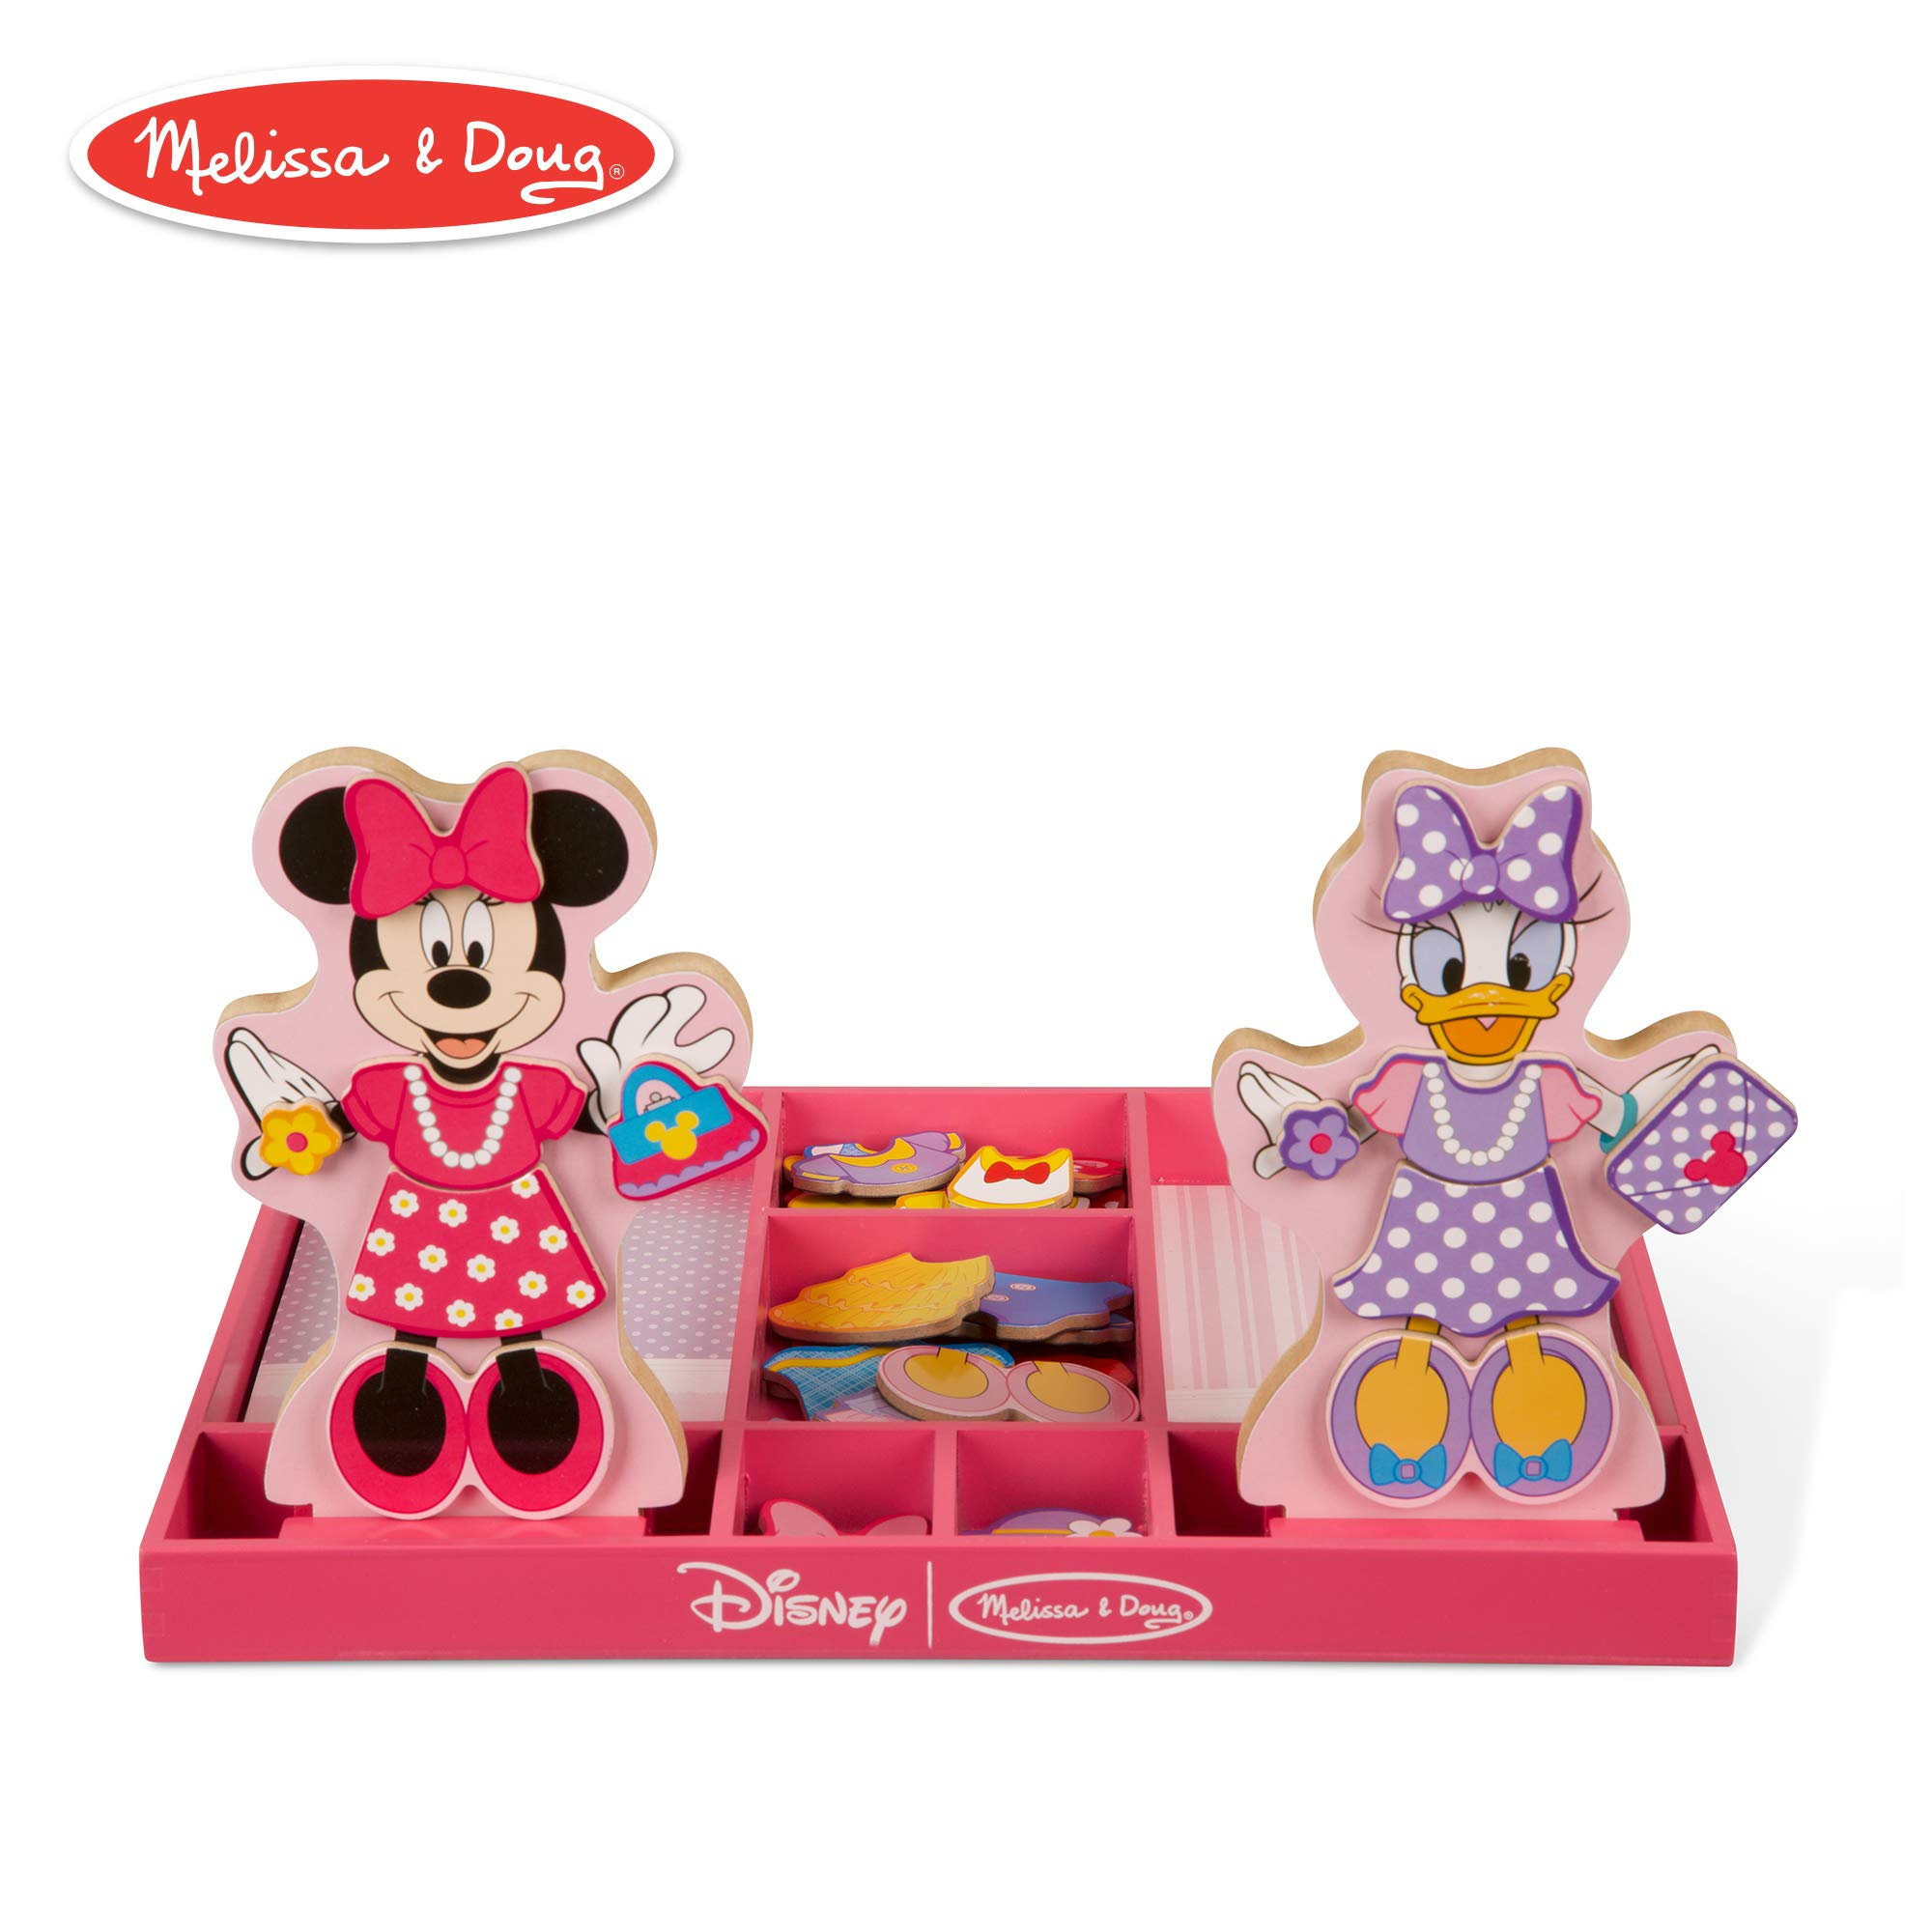 Melissa & Doug Disney Minnie Mouse and Daisy Duck Magnetic Dress-Up Wooden Doll (Pretend Play Set, Interchangeable Pieces, Display Stands, 45+ Pieces) by Melissa & Doug